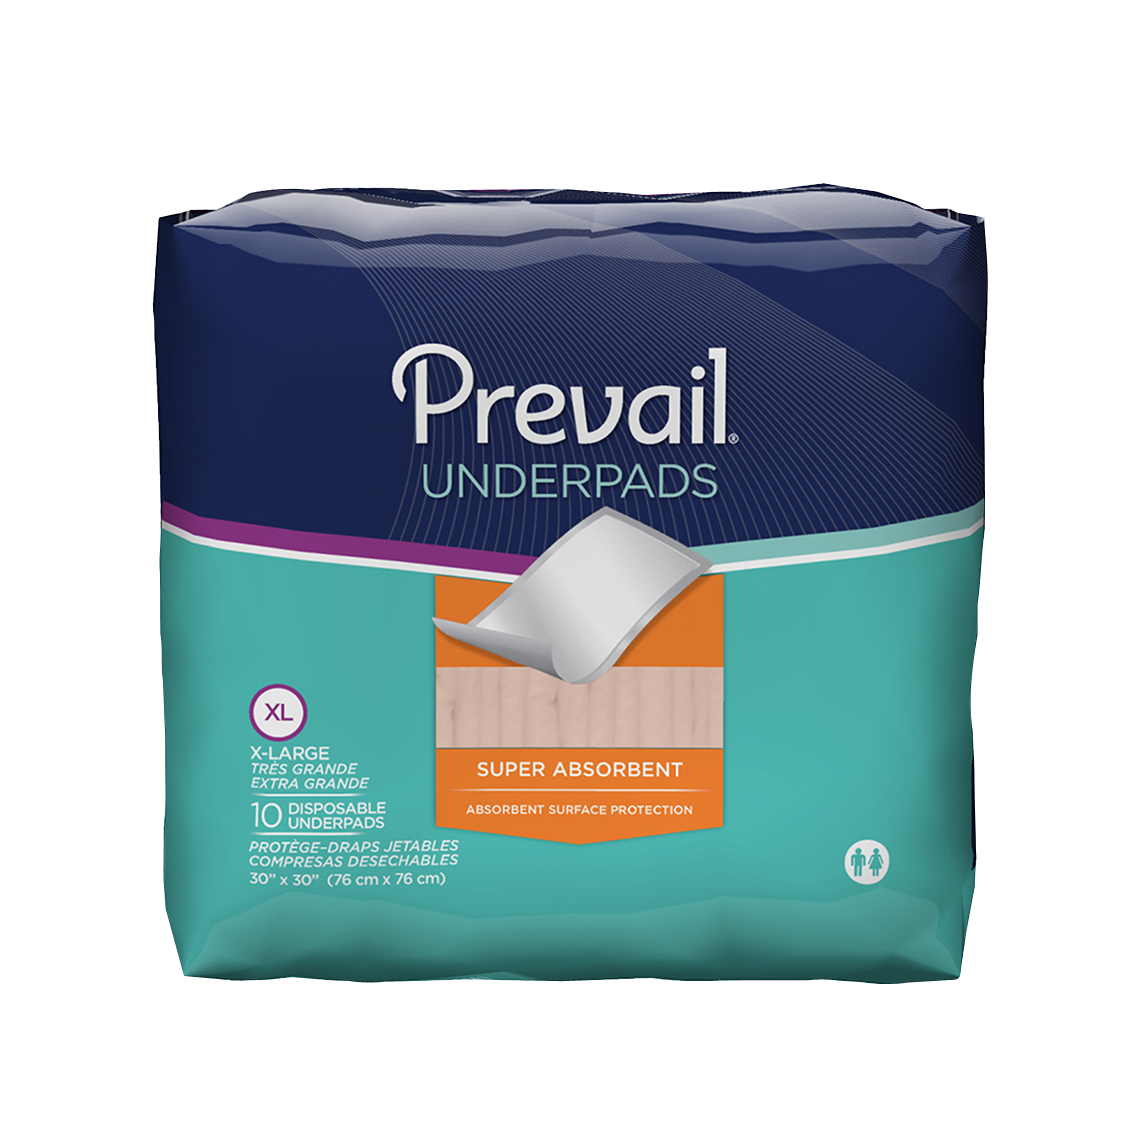 The Prevail Super Absorbent Underpad features an Integra